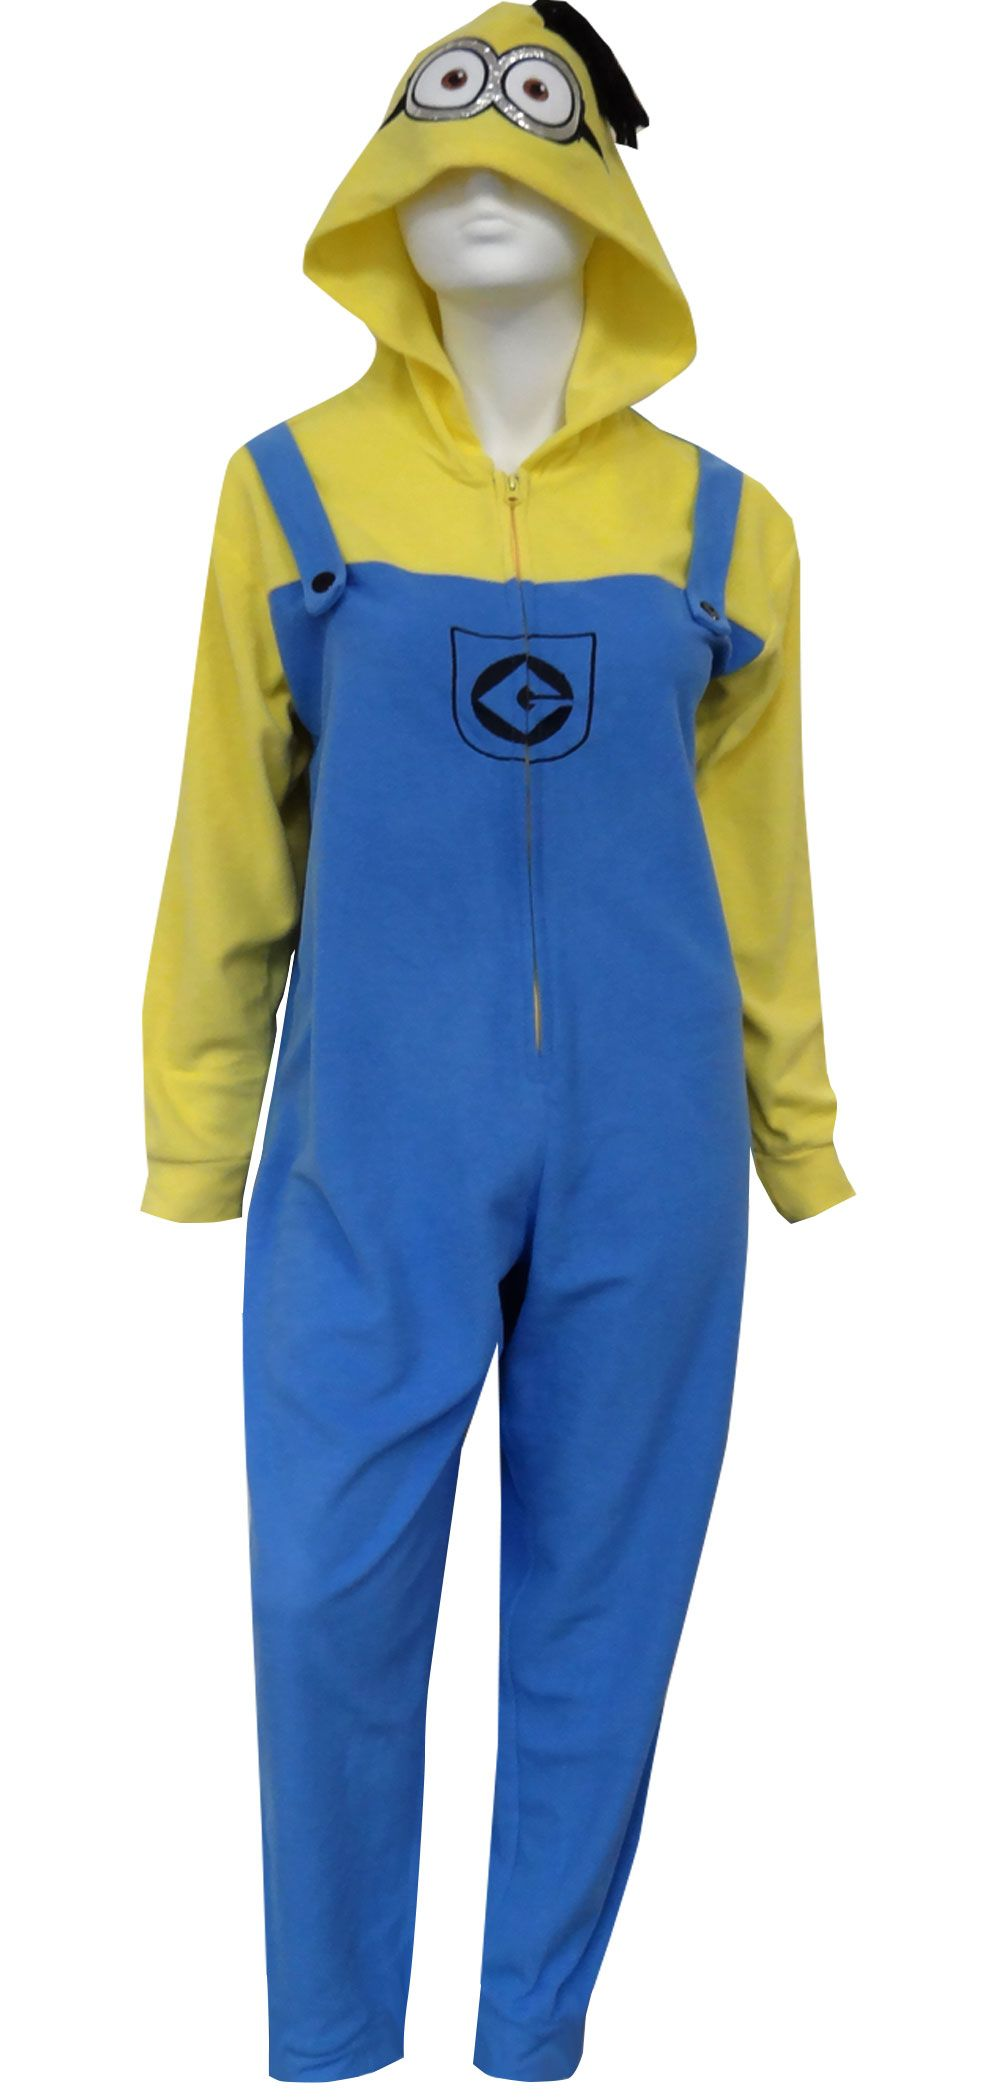 5c7dfddcade9ec Despicable Me Minion in Overalls Hooded One Piece Pajama | Adult ...